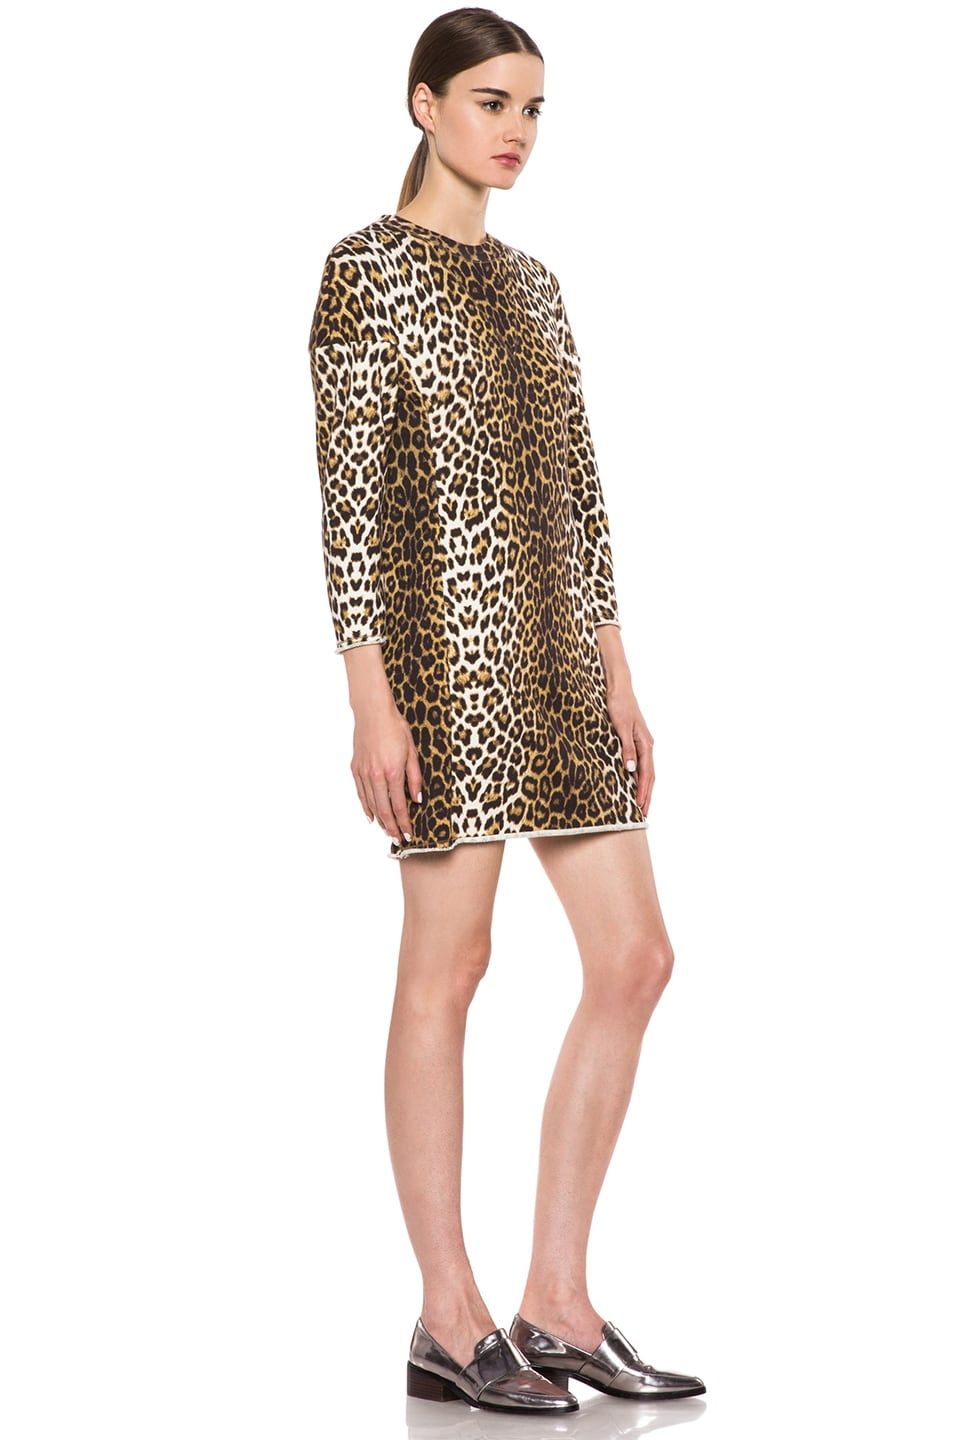 Image 3 of 3.1 phillip lim Rounded Shoulders Sculpted Cotton Dress in Leopard